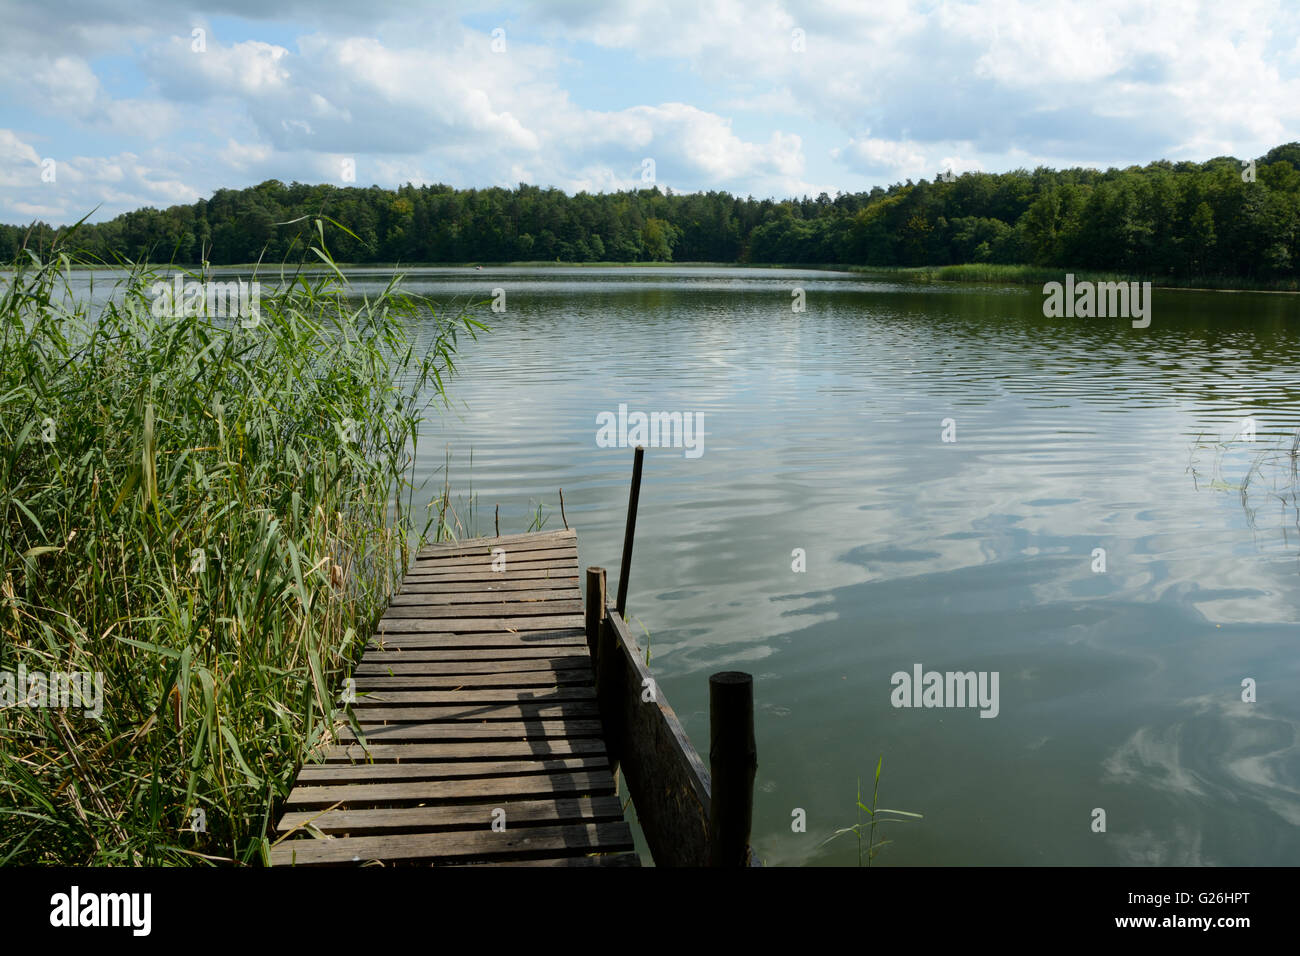 Old wooden pier, cane and forest at lake. Stock Photo